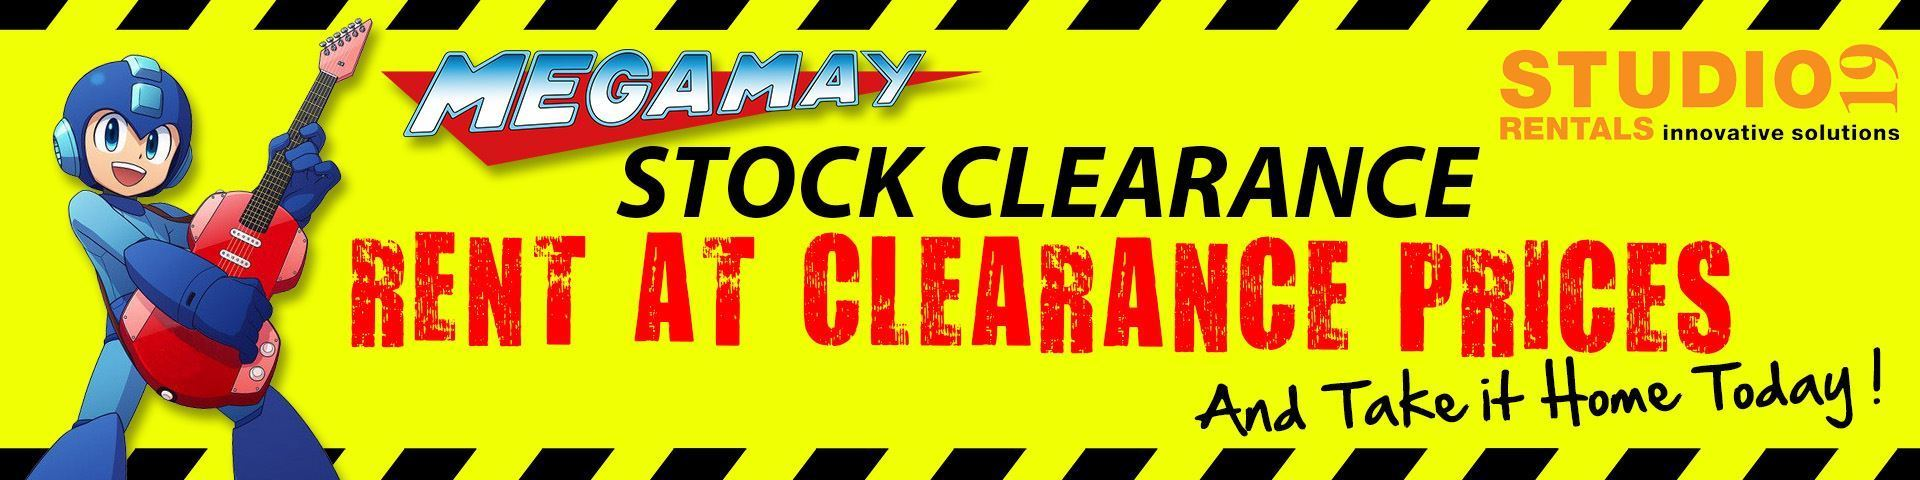 Mega May Stock Clearance - Rent Now